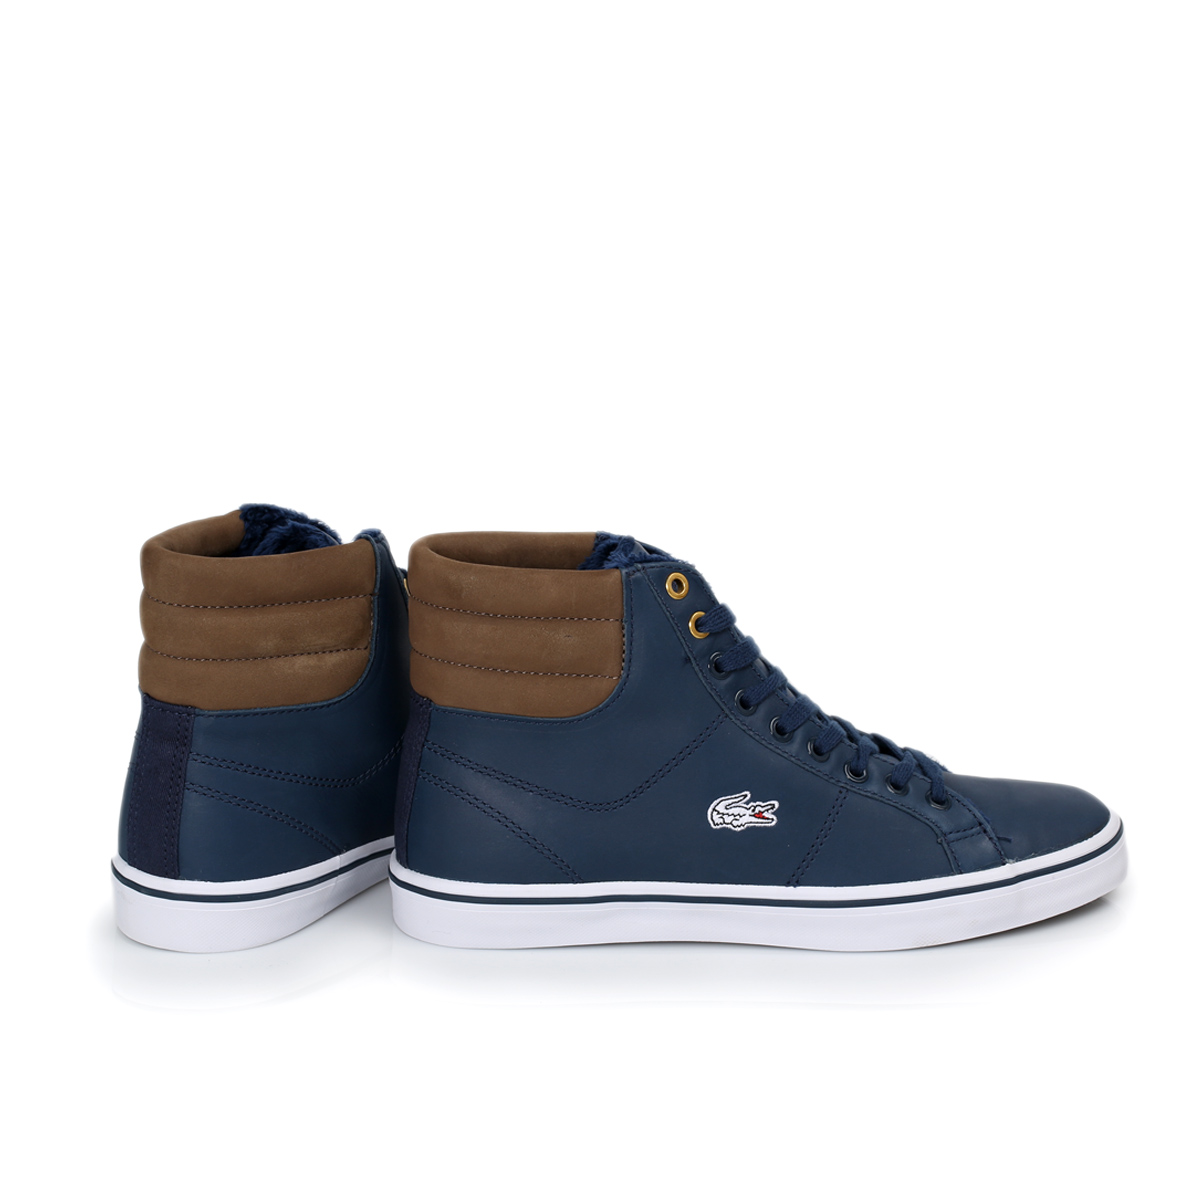 Lacoste Shoes For Women High Top